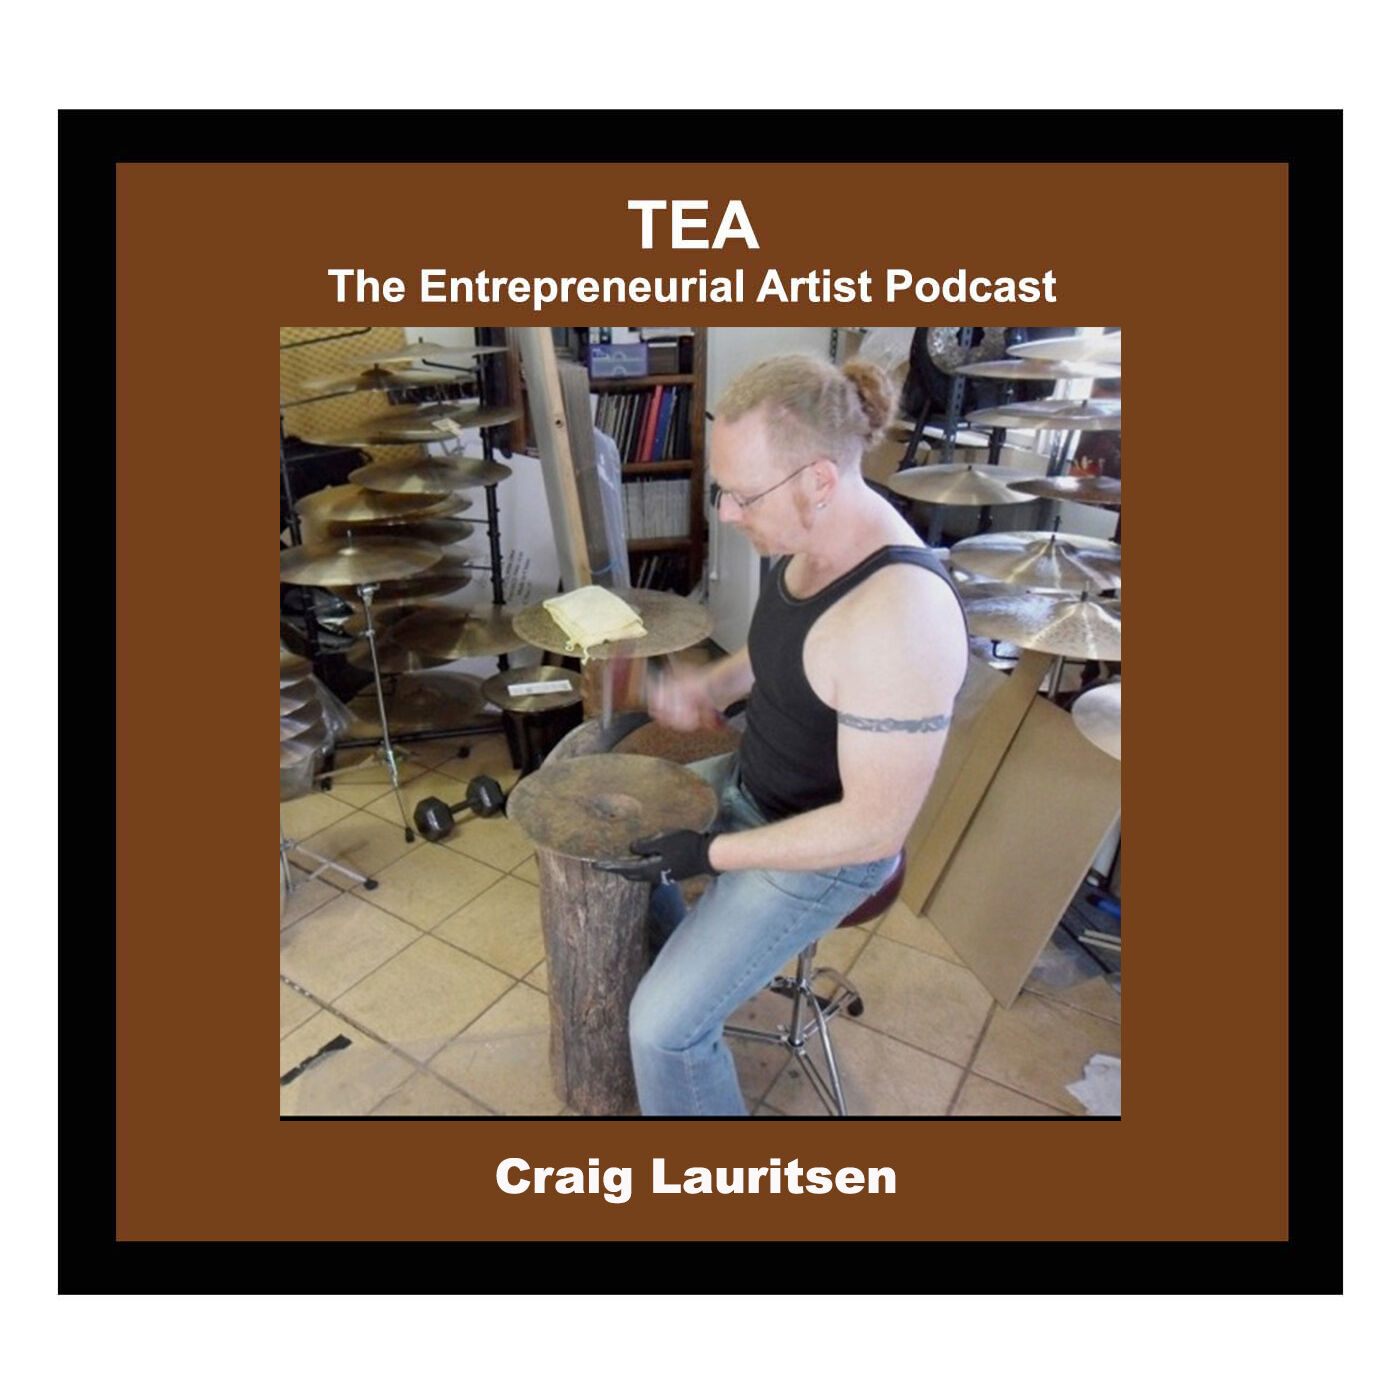 A chat with Craig Lauritsen Cymbal Smith, Musician, Drummer